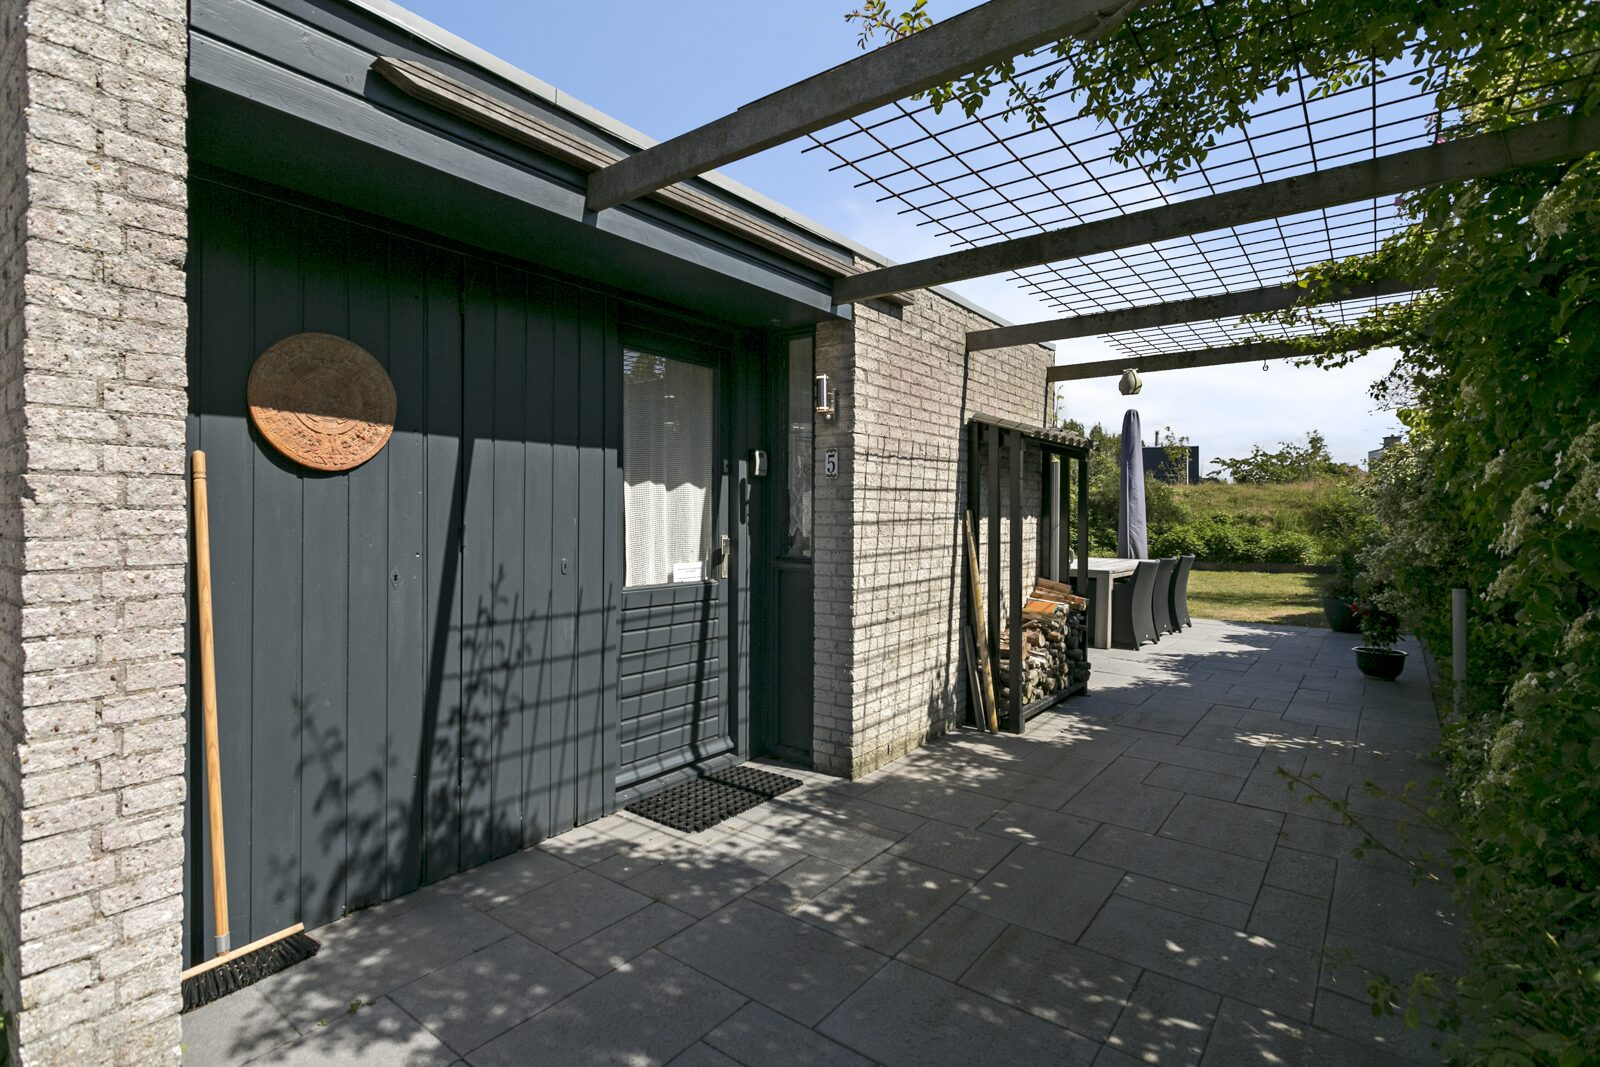 Mimosa 5 - Klepperstee Ouddorp